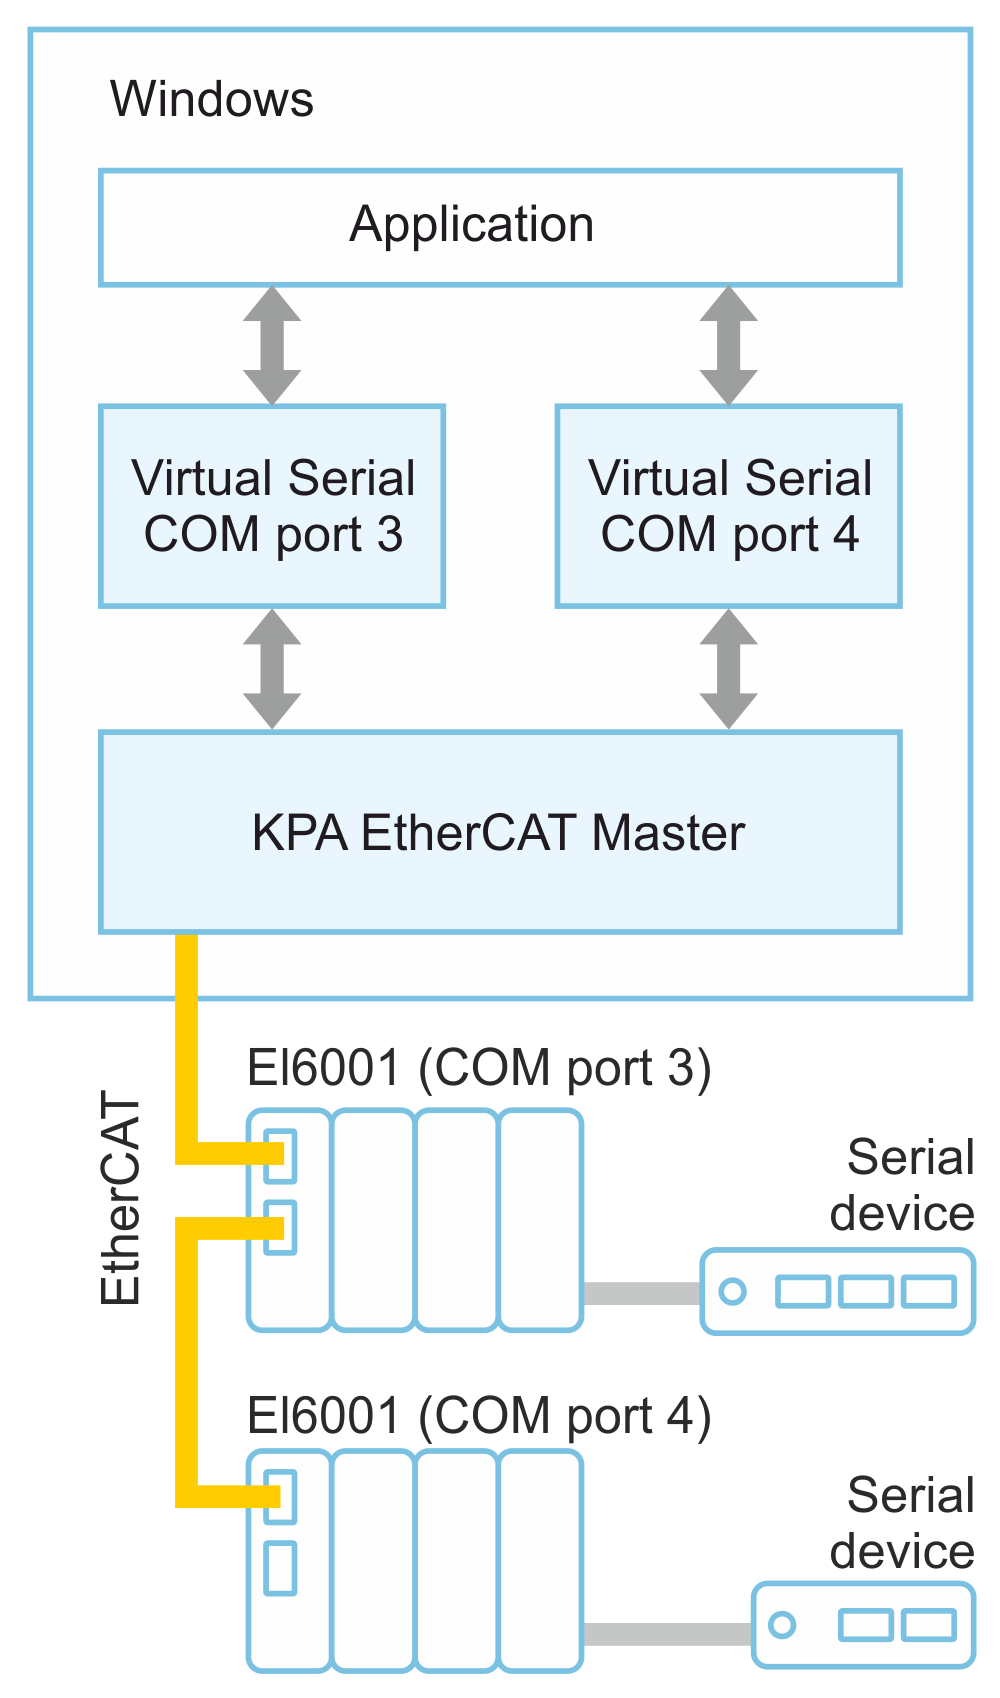 kpa ethercat studio Example of Virtual Serial COM implementation